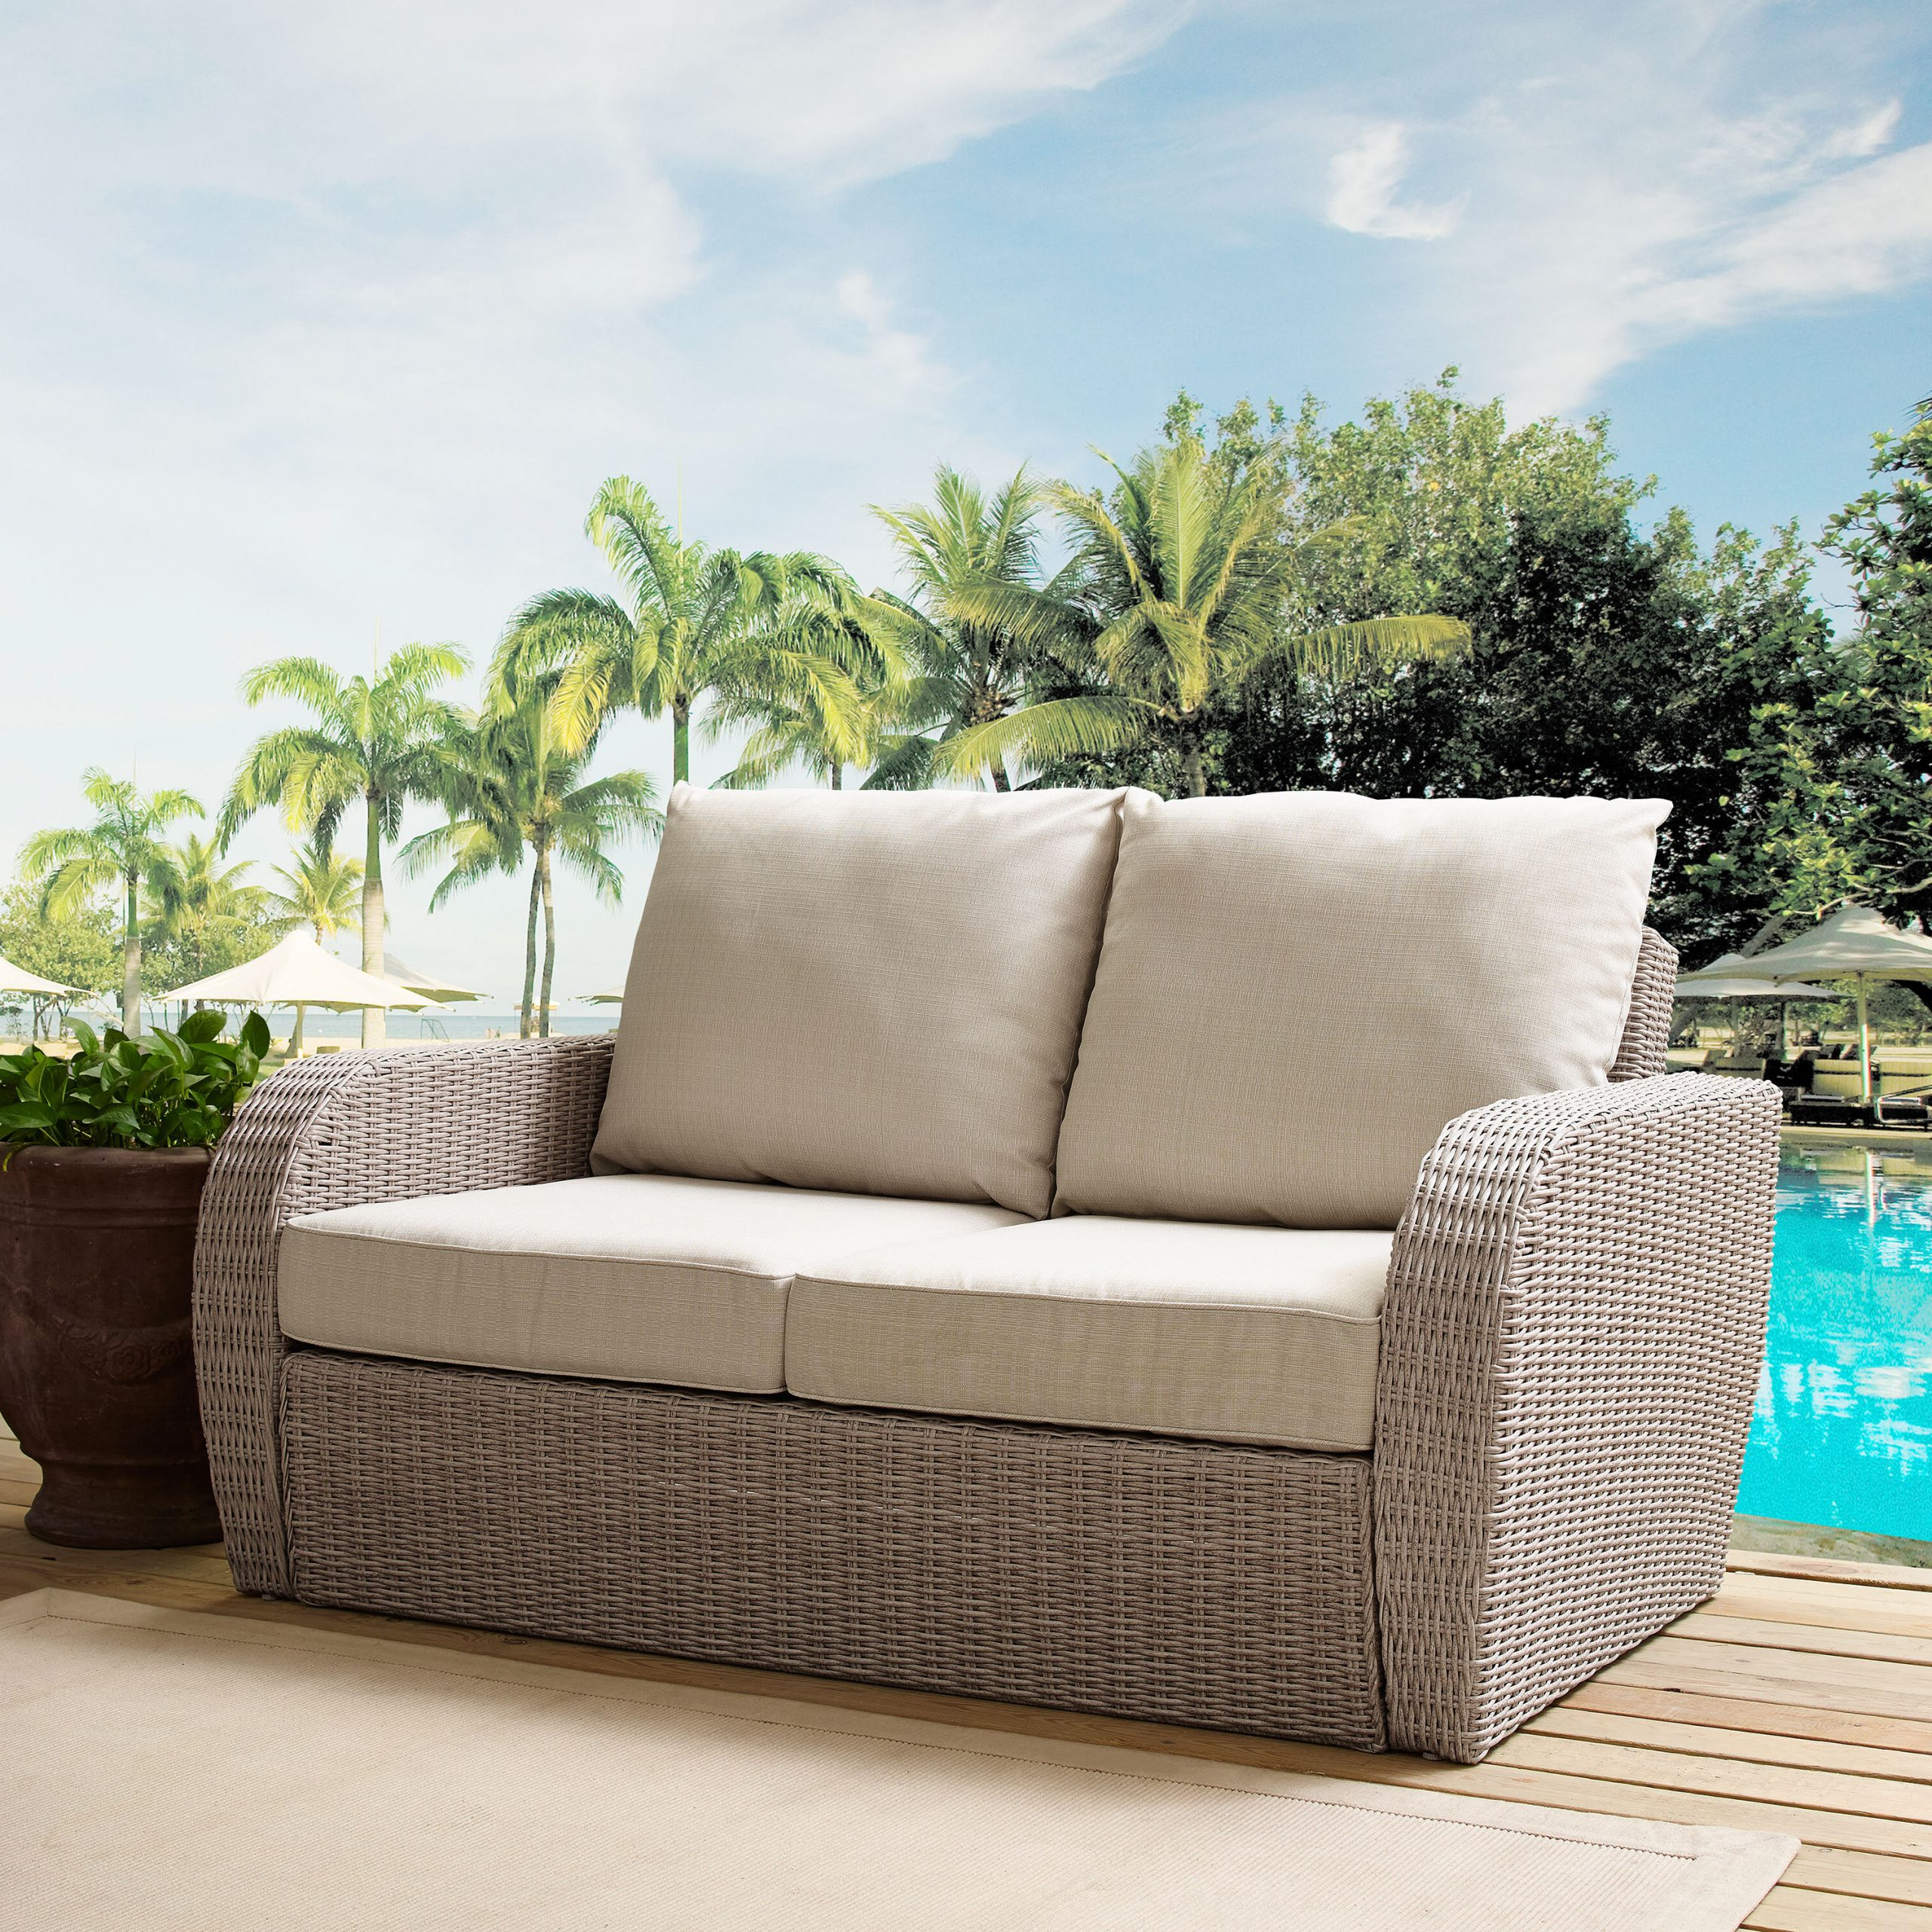 Oceanside Outdoor Wicker Loveseats With Cushions Throughout Most Recent Zakrzewski Wicker Loveseat With Cushion (View 7 of 25)